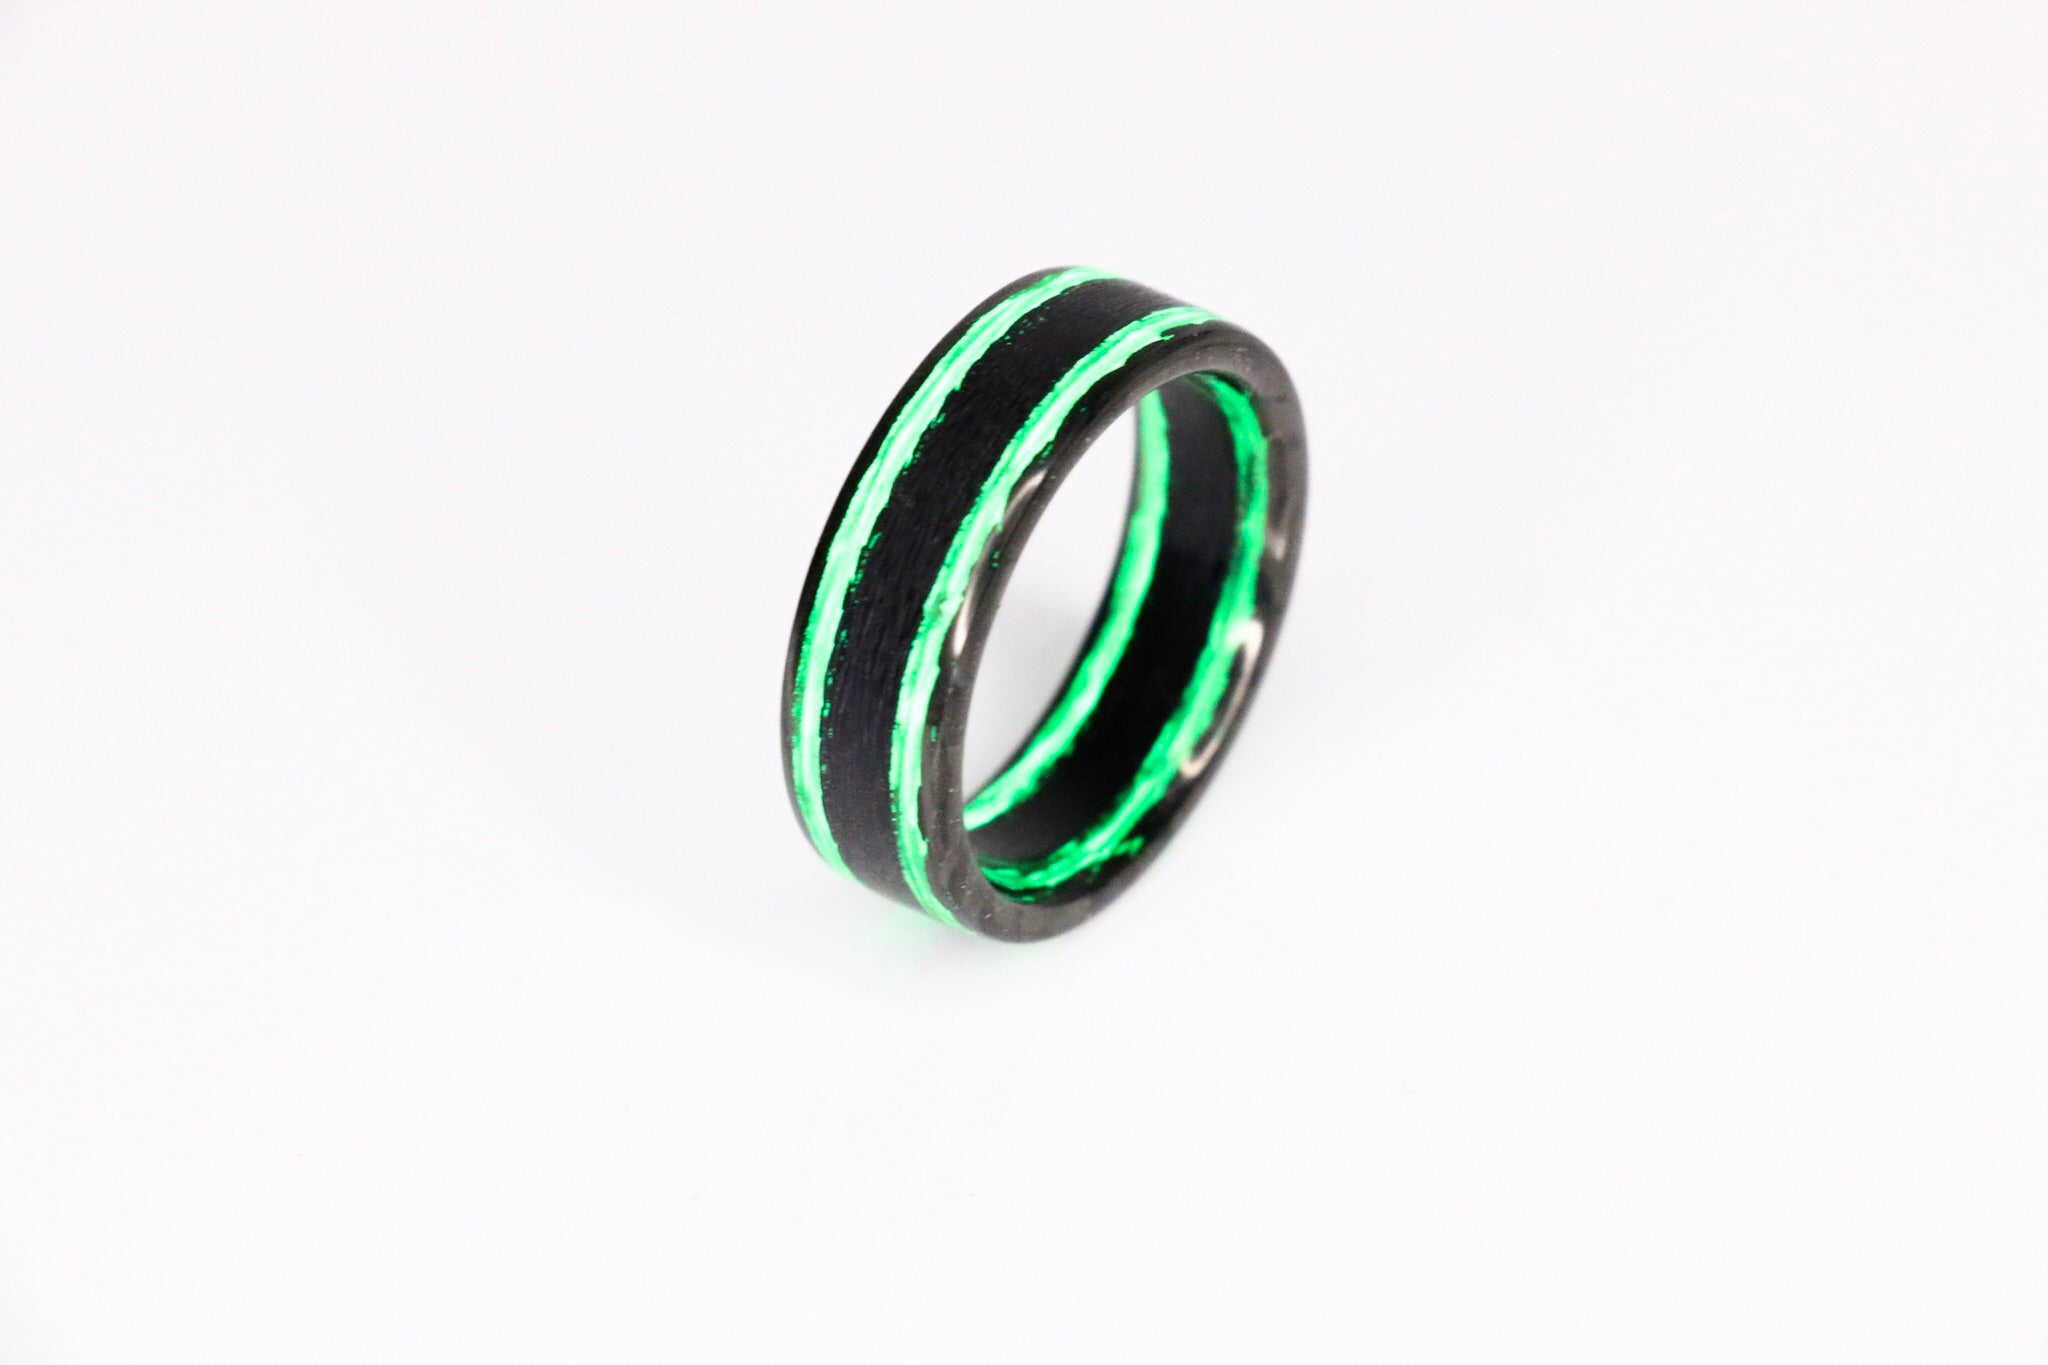 Joker Metallic Carbon Fiber Ring